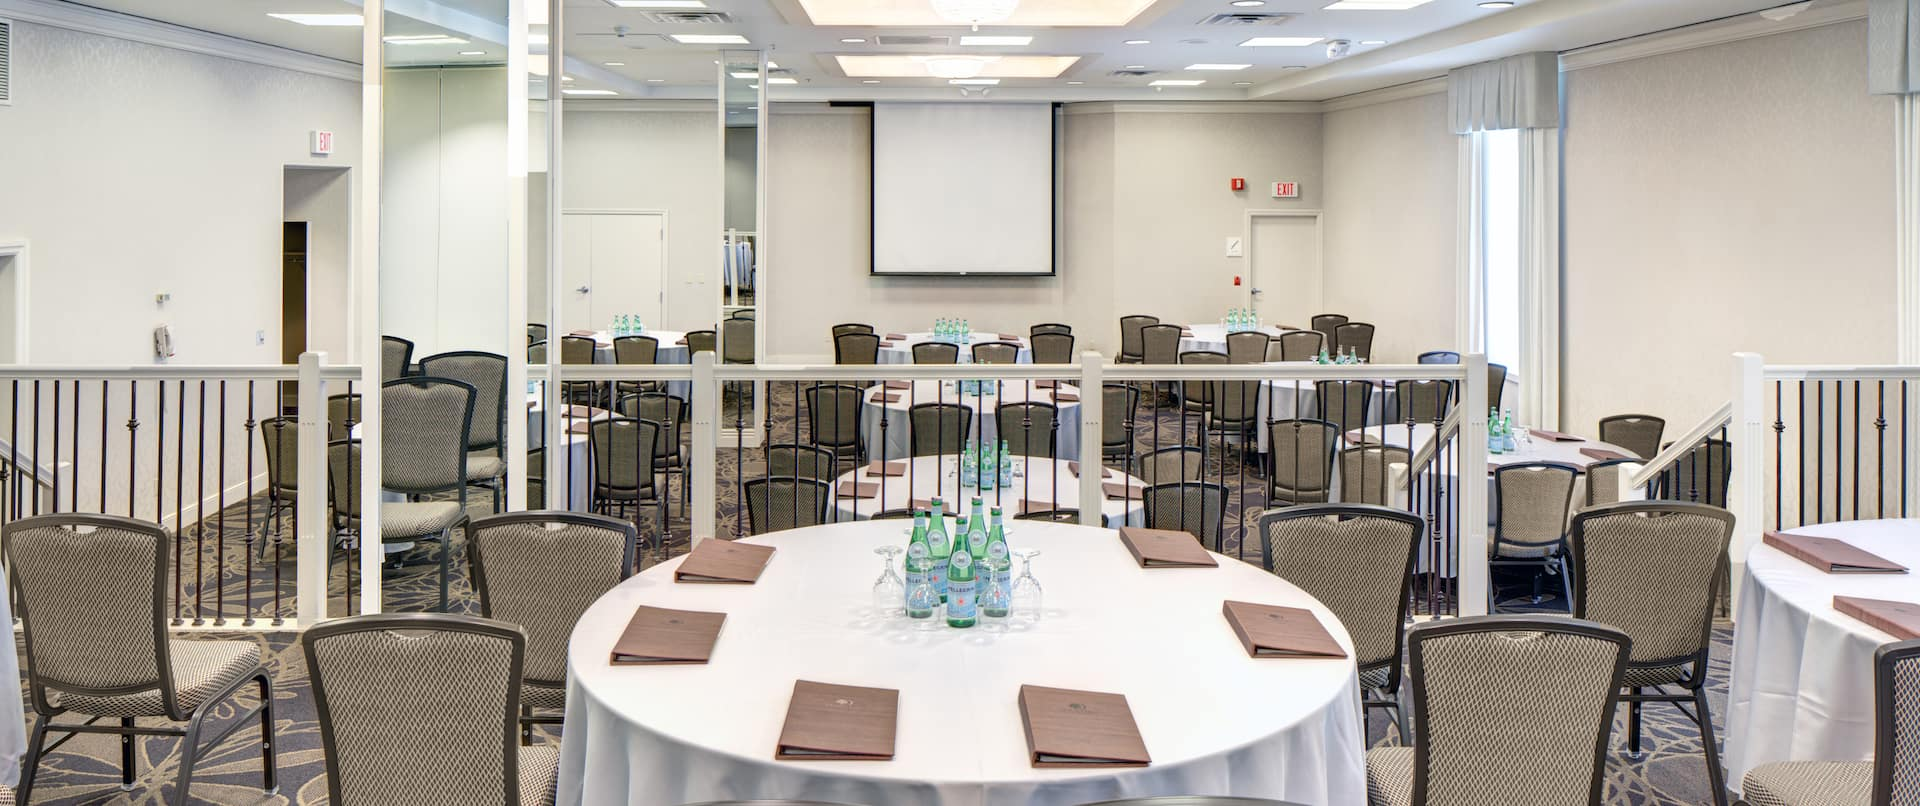 Cabaret Setup With Round Tables and Chairs Facing Presentation Screen in Split Level Meeting Space